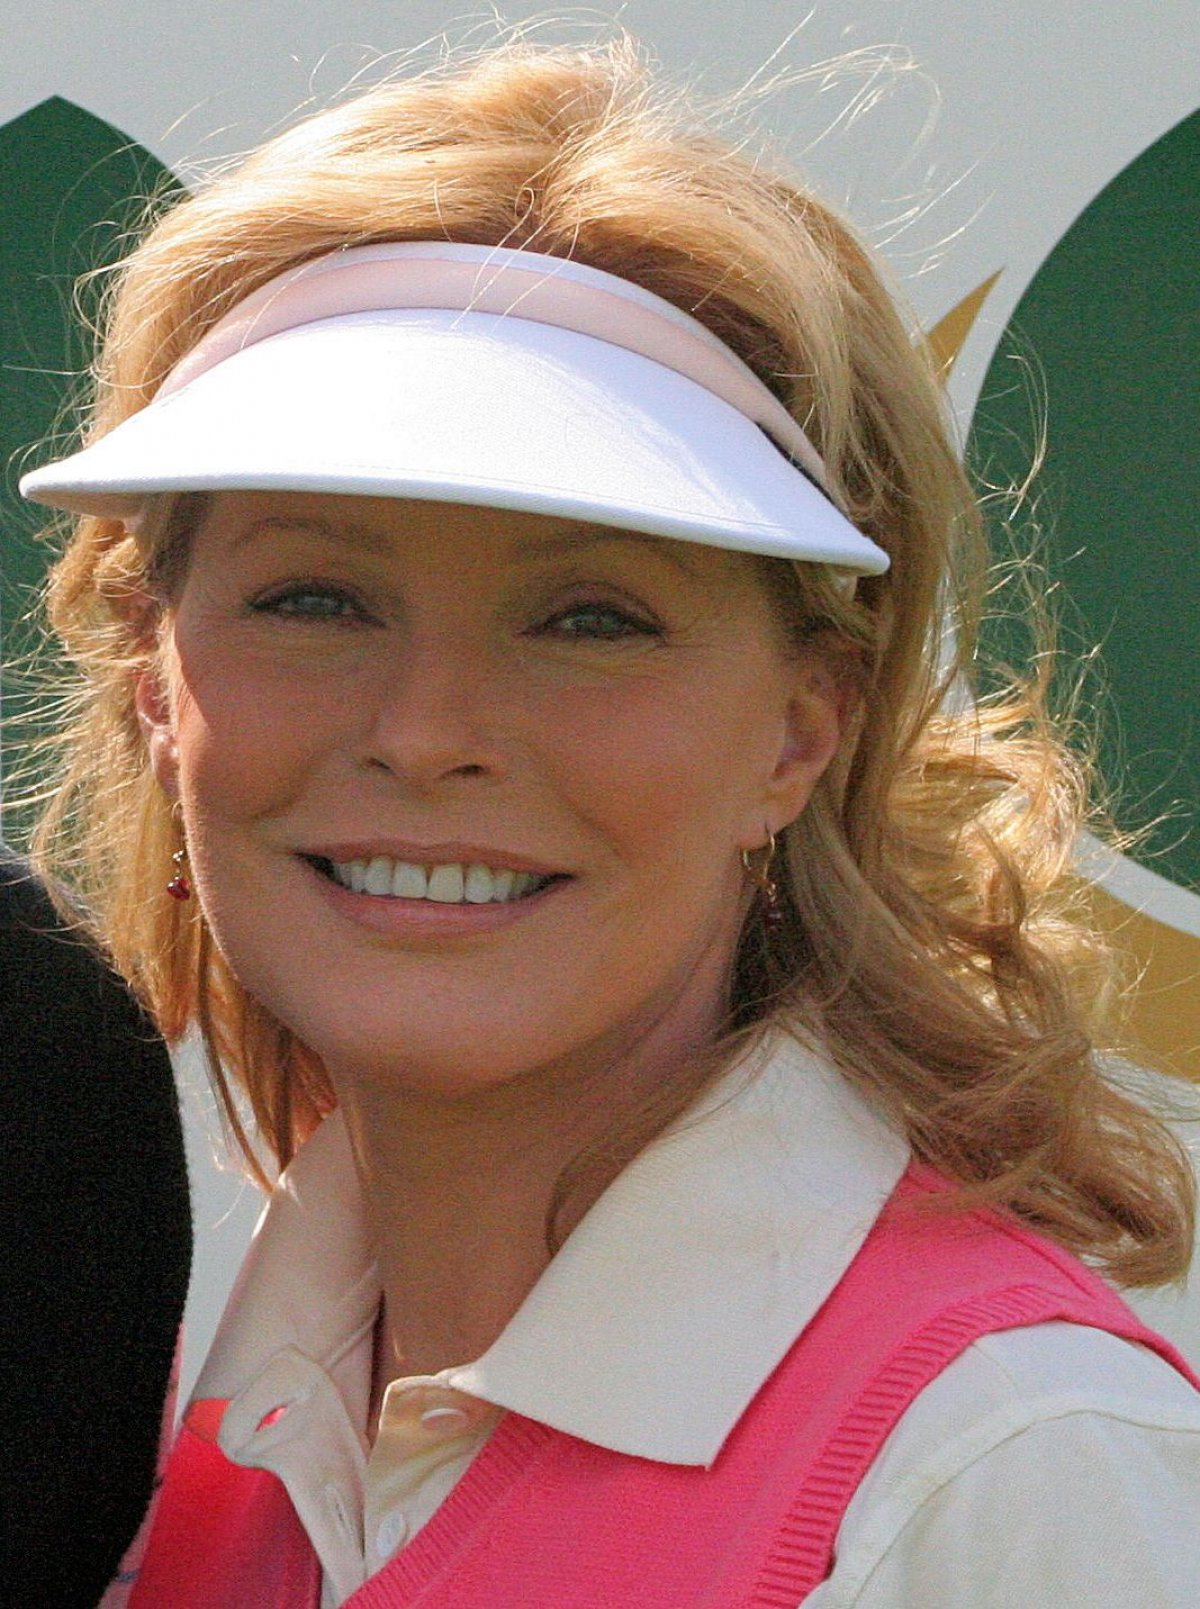 Forum on this topic: Stacey DePass, mel-harris-born-july-12-1956-age/